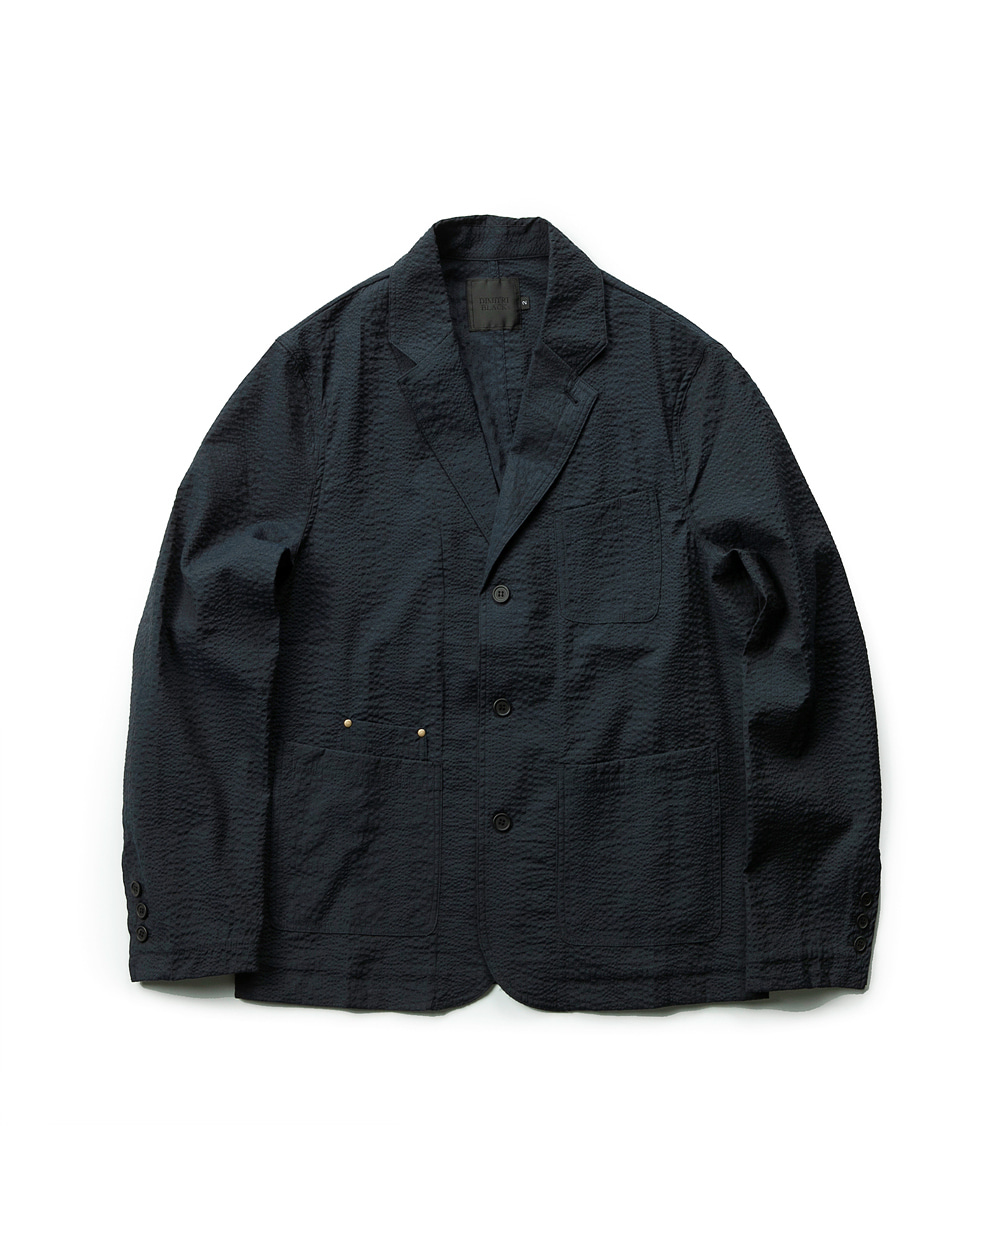 SEERSUCKER SHOOTING JACKET NAVY